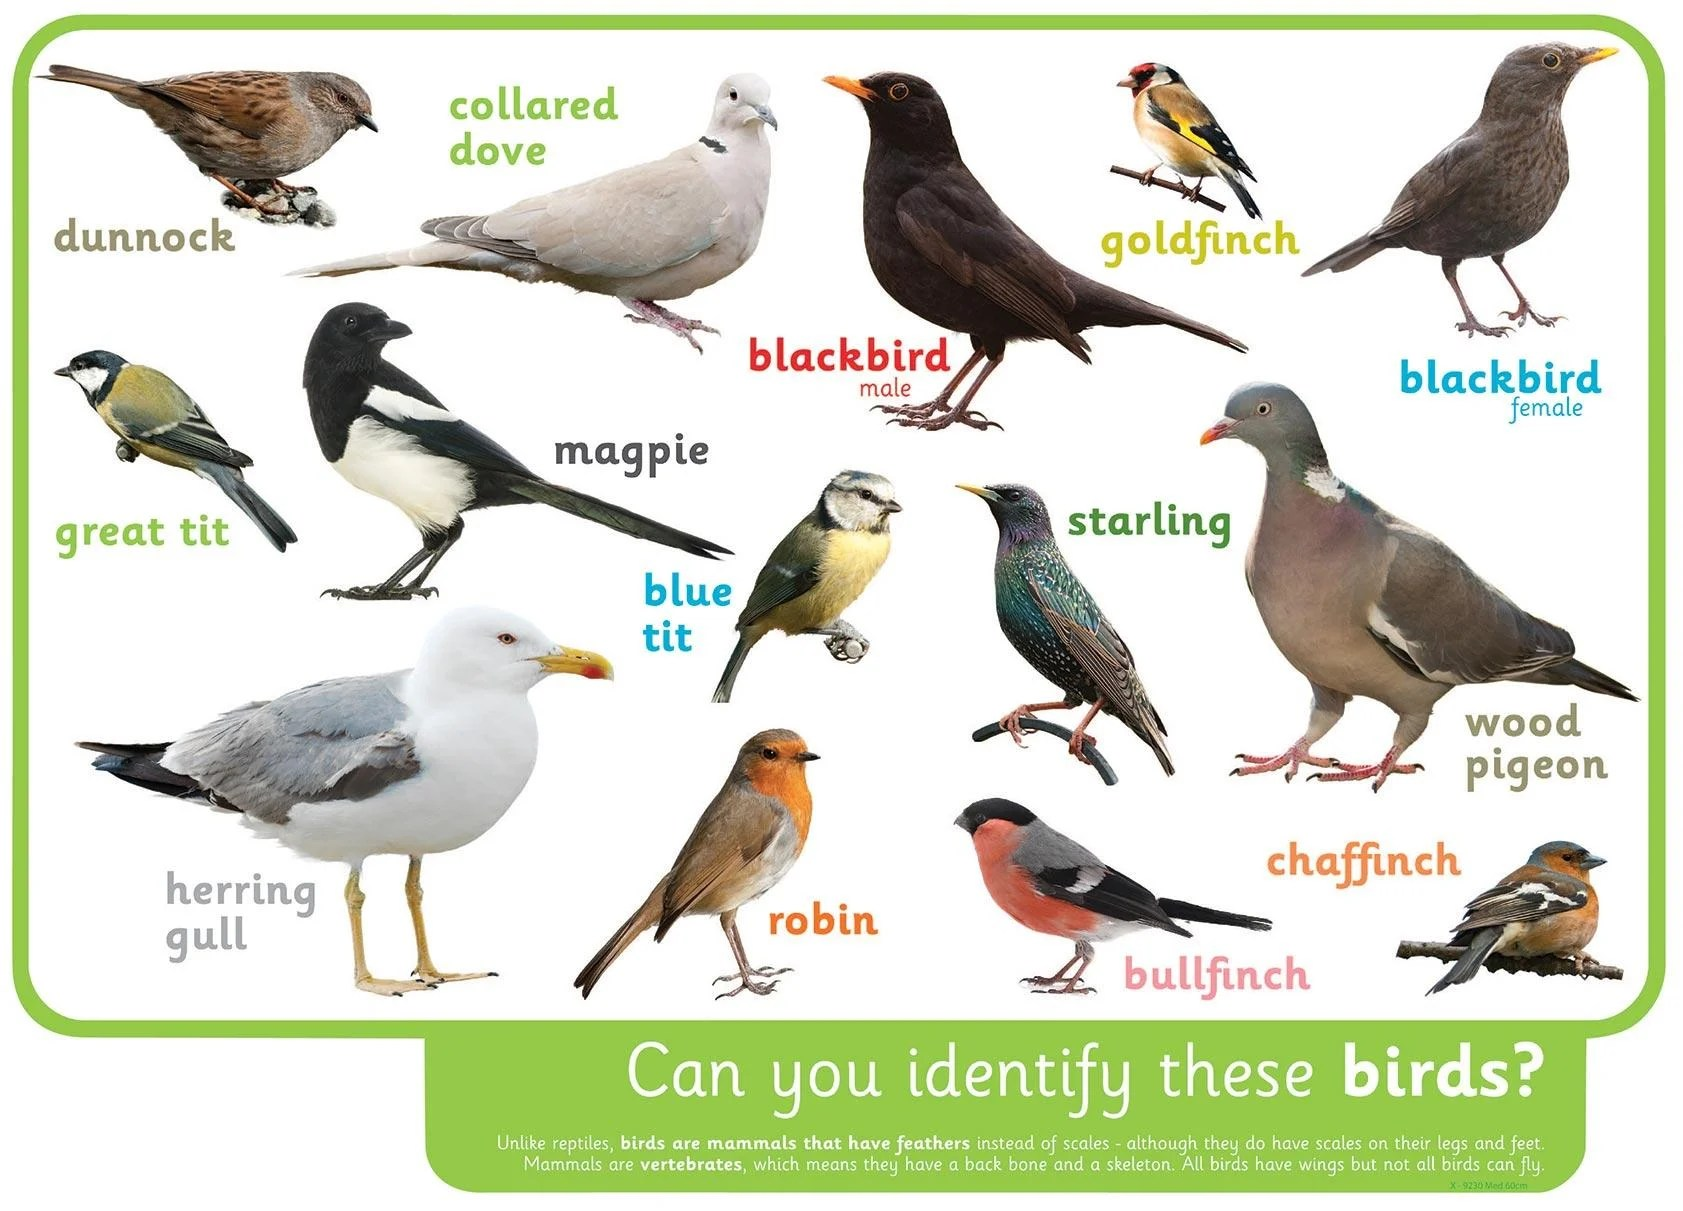 Can You Identify These Birds